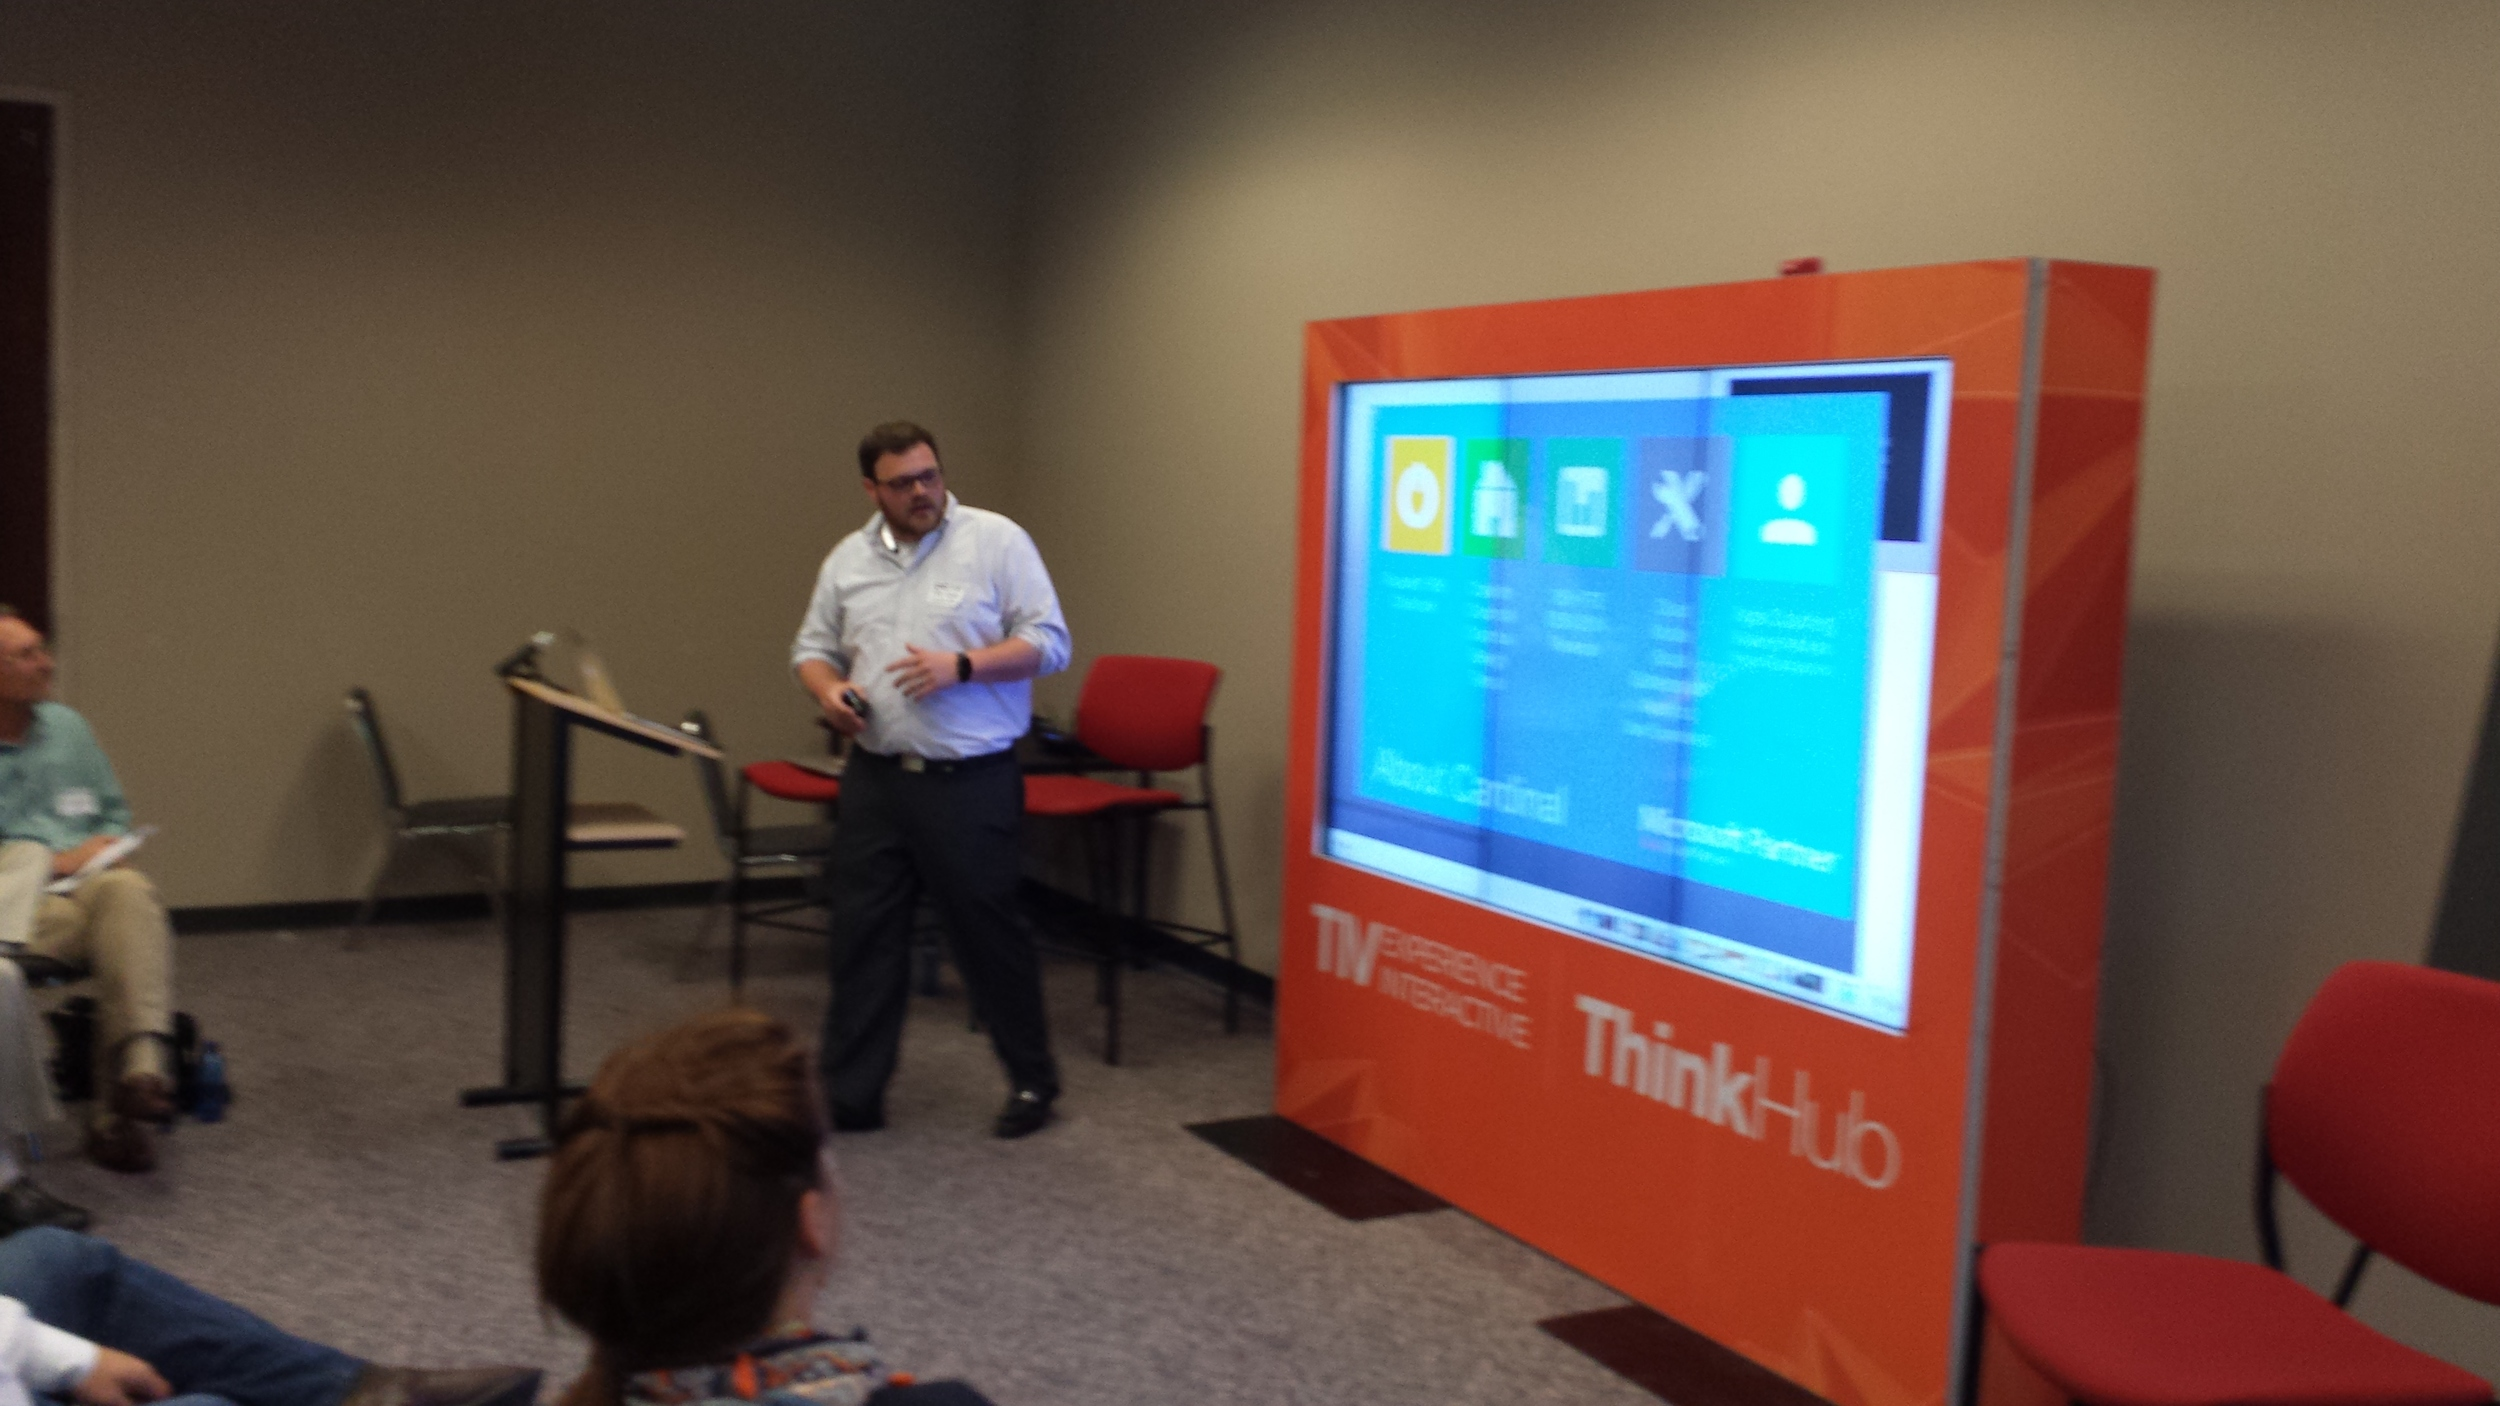 Cardinal Solutions demos a Gigabit app at GigWOW on a T1V ThinkHub display.